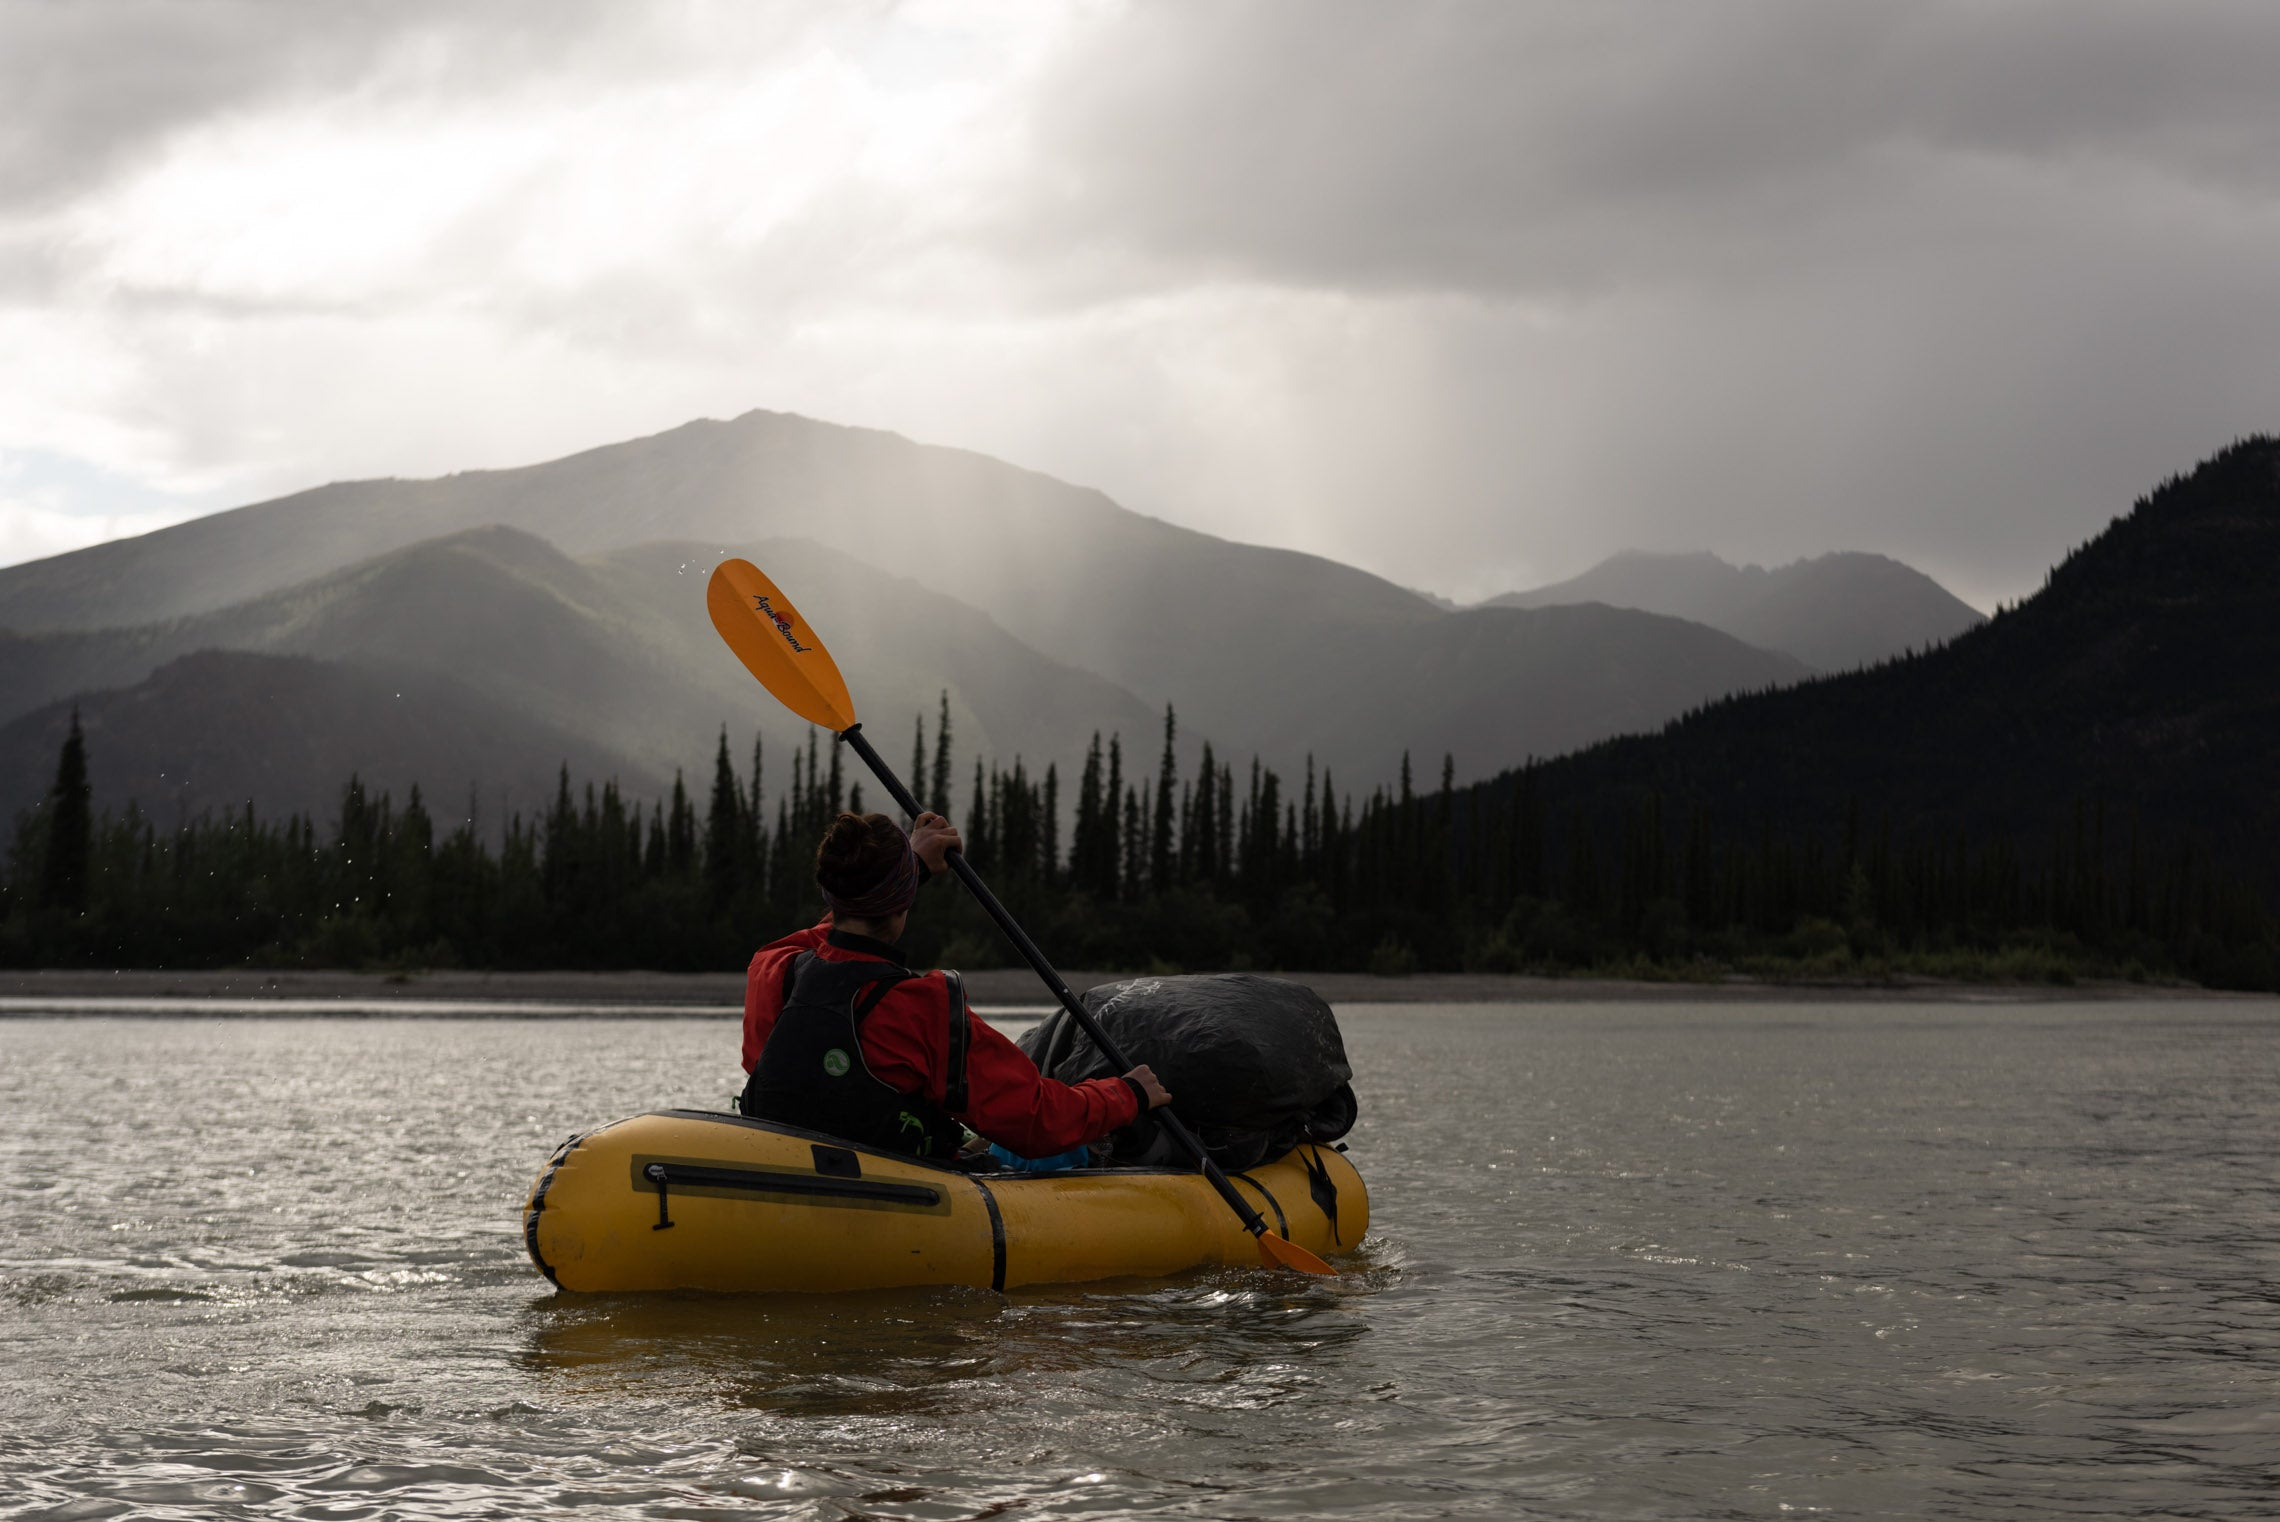 Person packrafting with gear in a lake with a mountain in the background